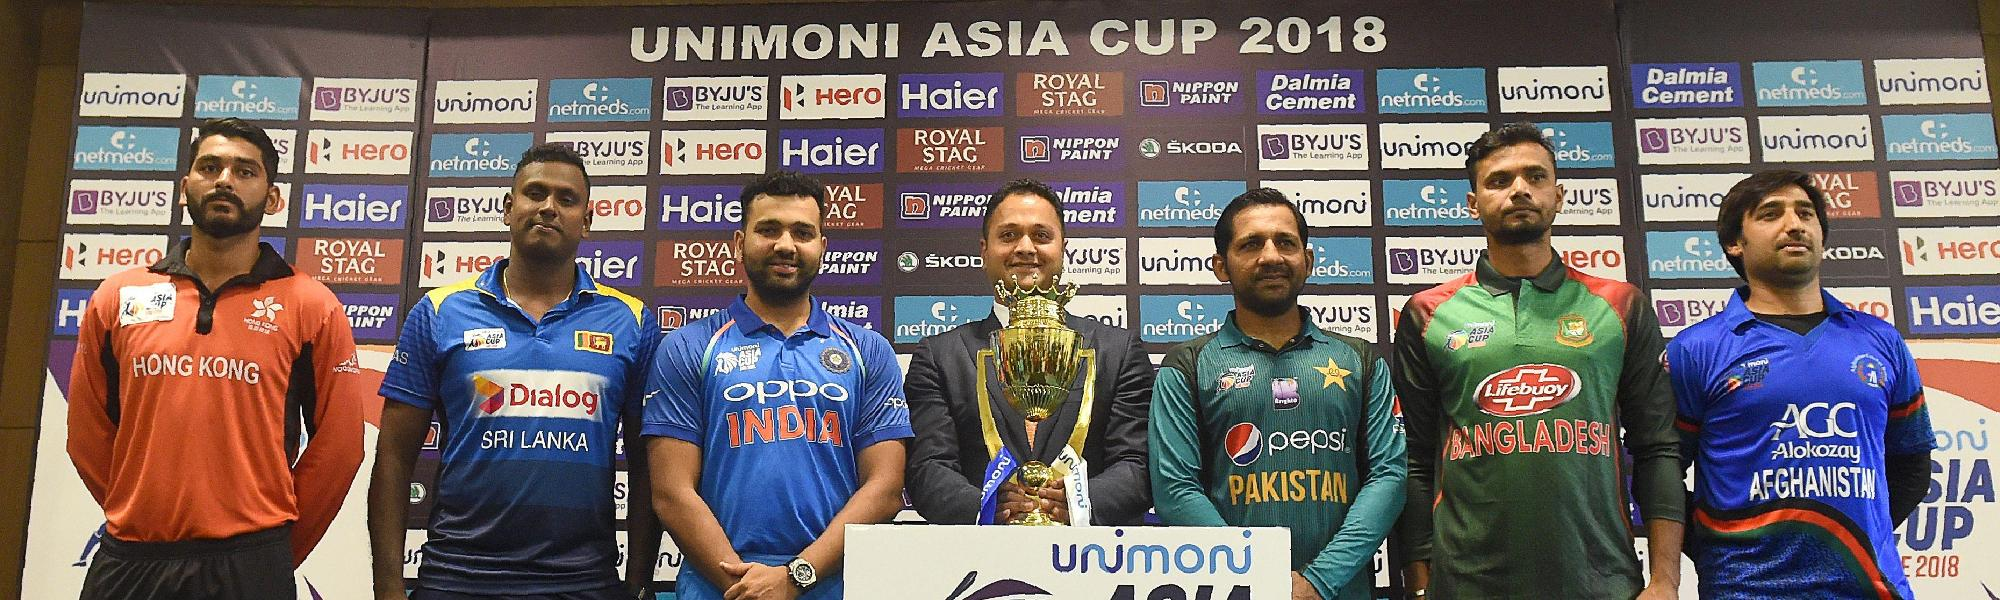 The Asia Cup team captains.jpg